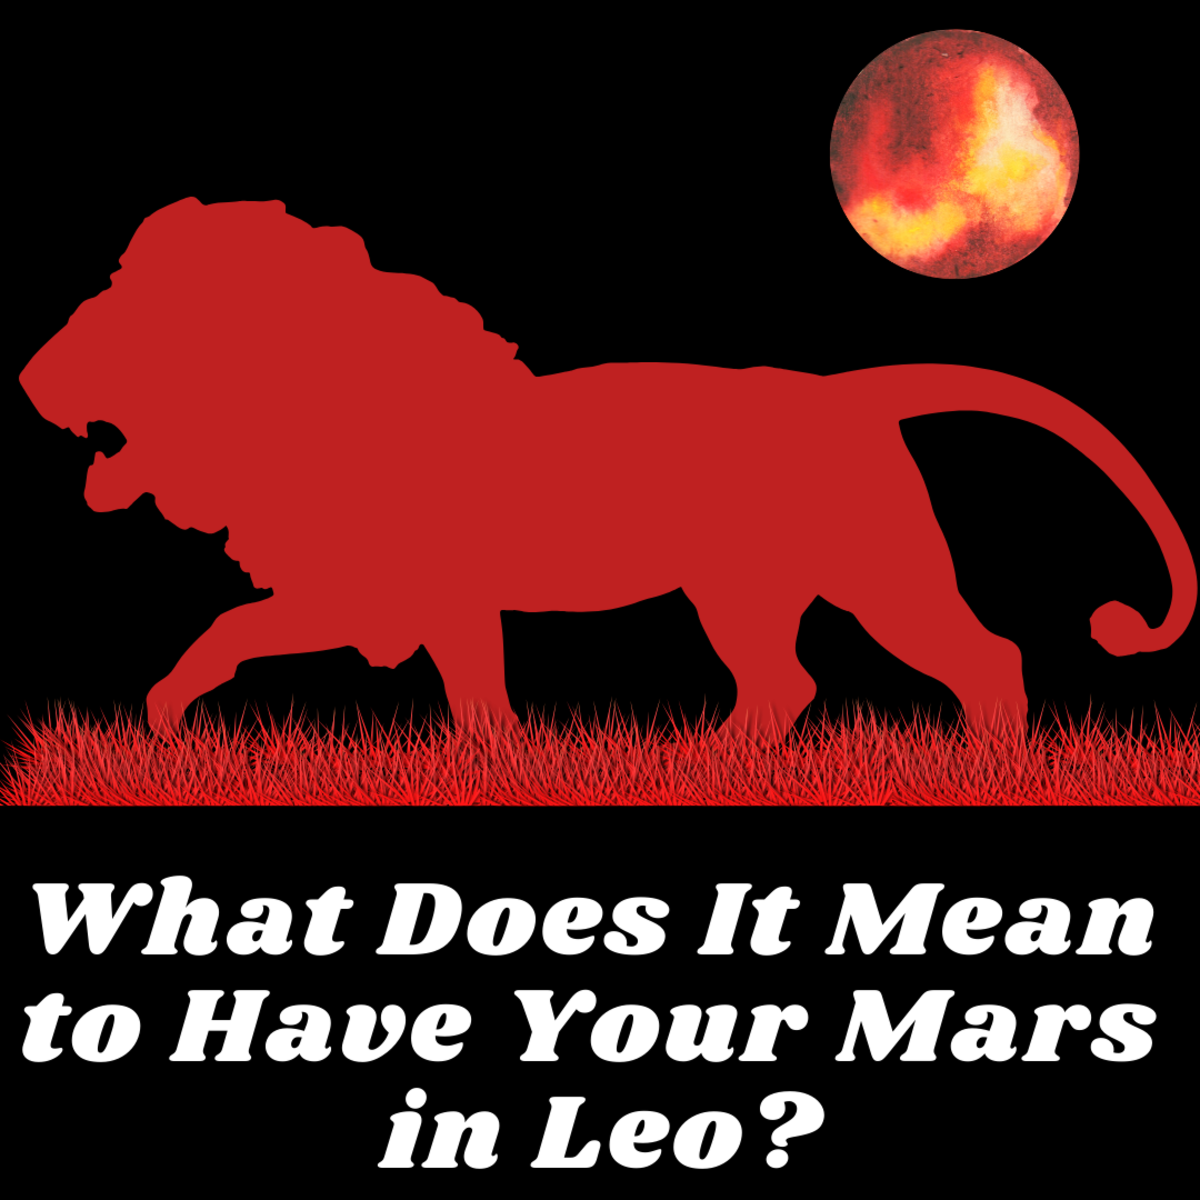 Read on to learn what it means to have your Mars in Leo.